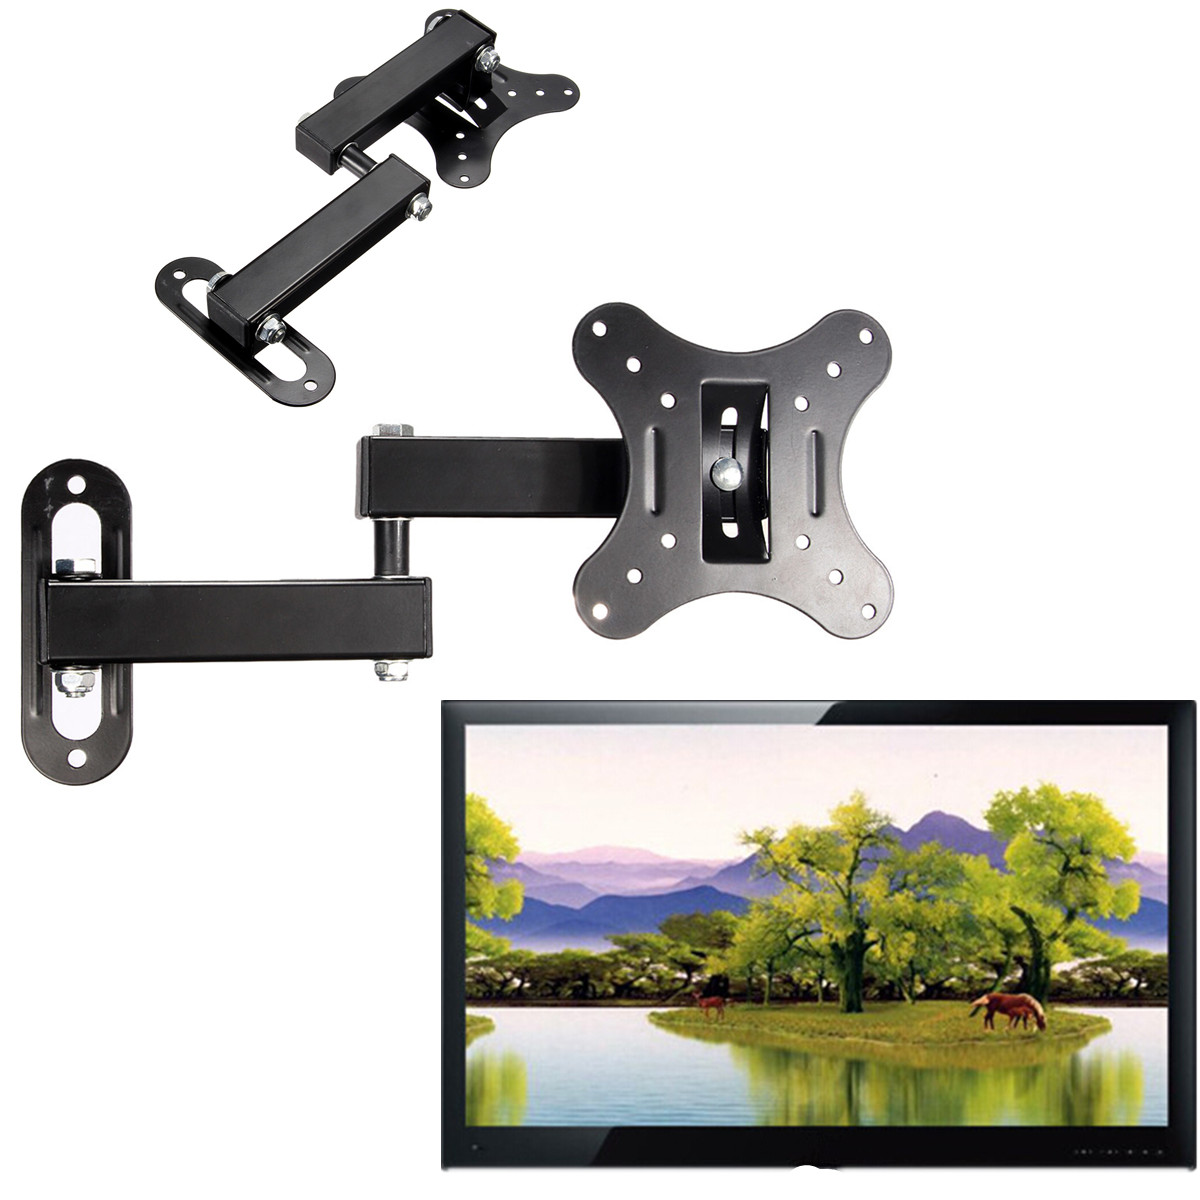 articulating universal tv bracket 14 inch to 27 inch led. Black Bedroom Furniture Sets. Home Design Ideas